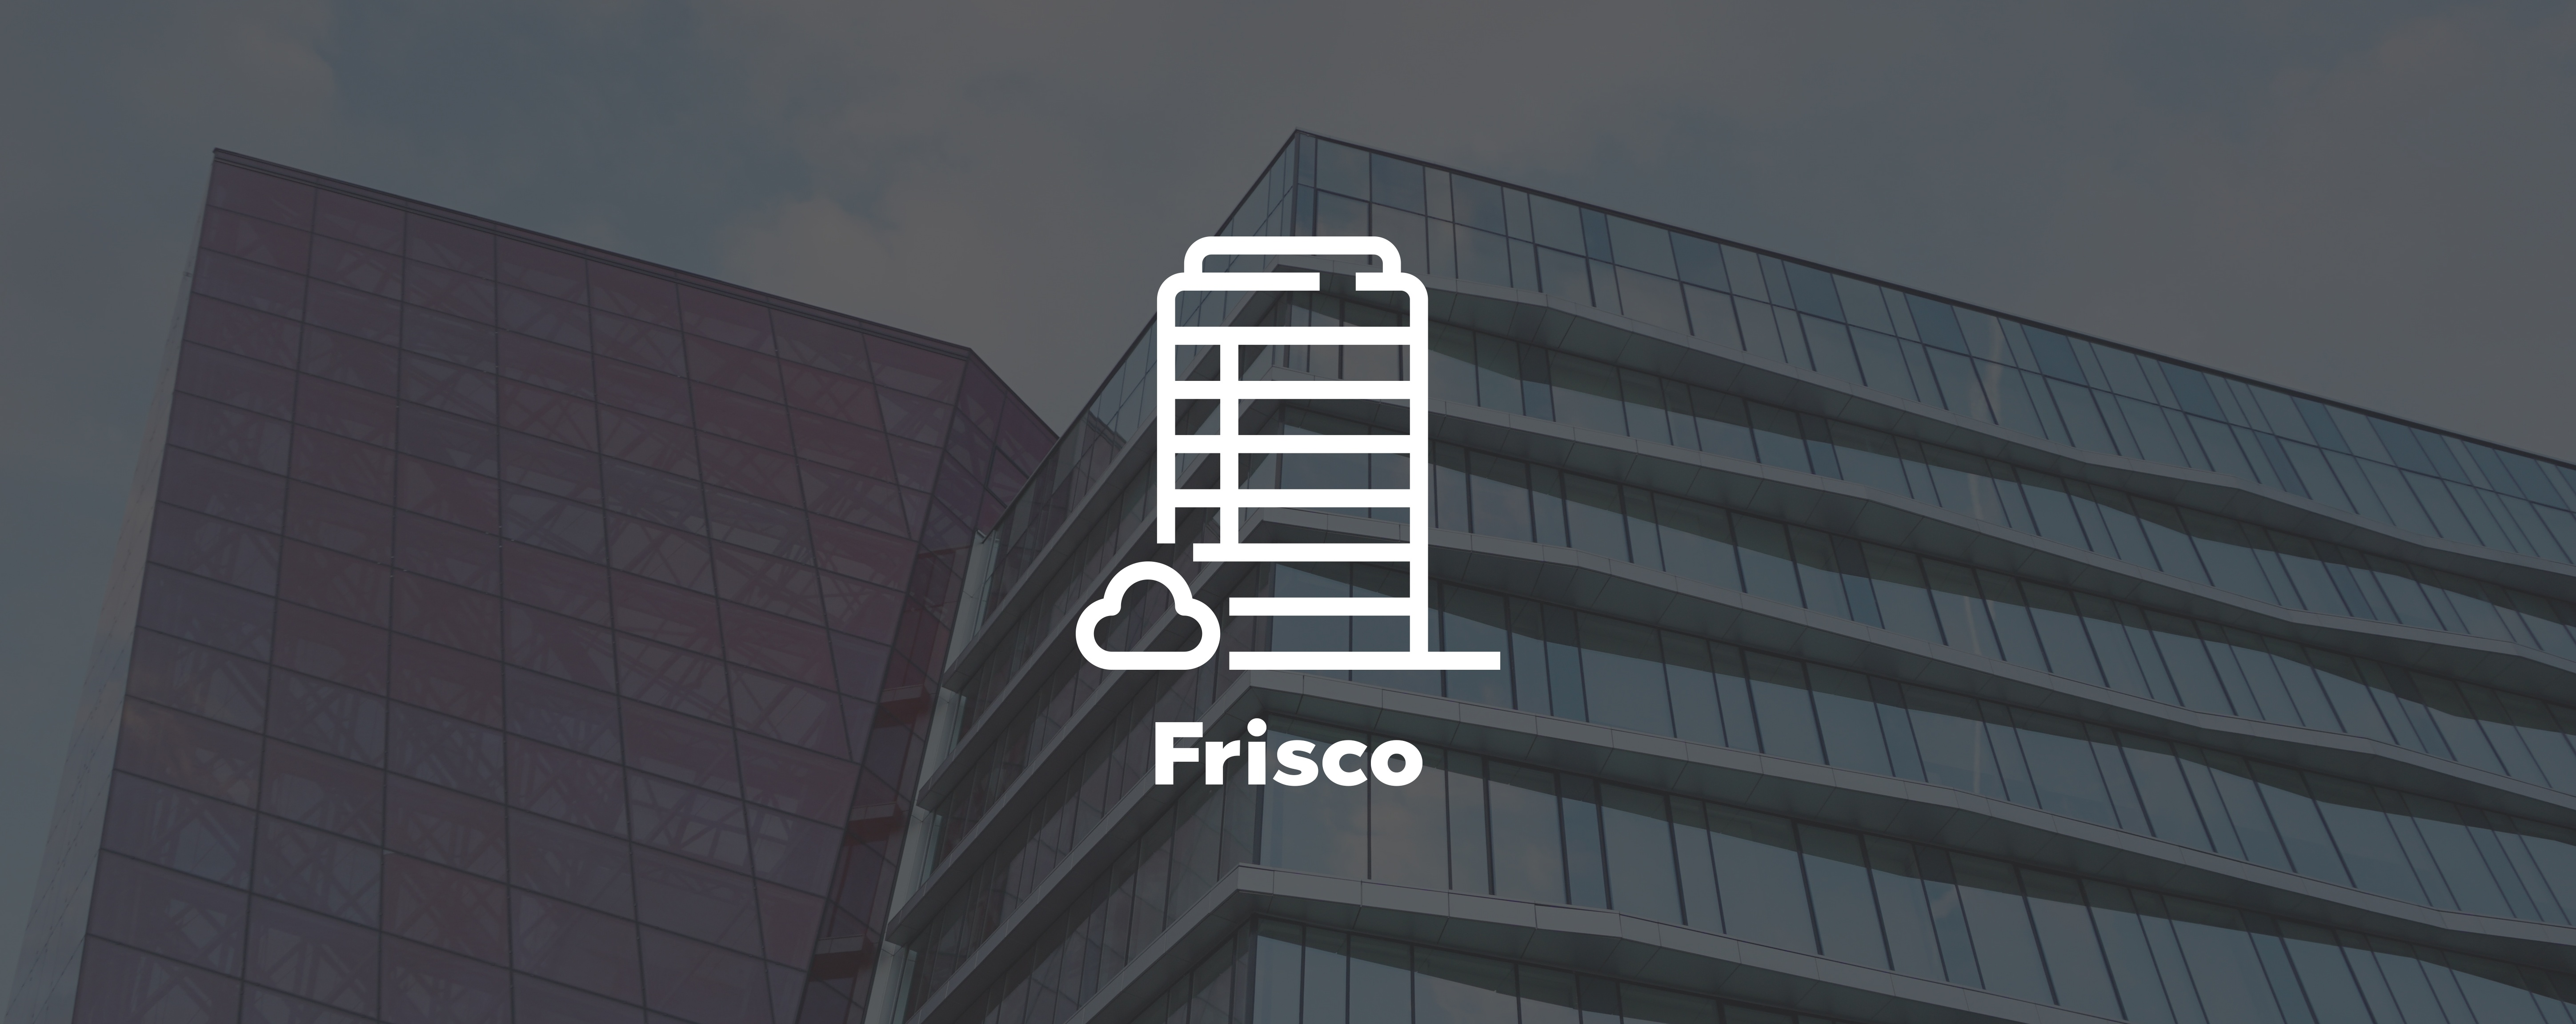 Office Space in Frisco Is Changing With the Times